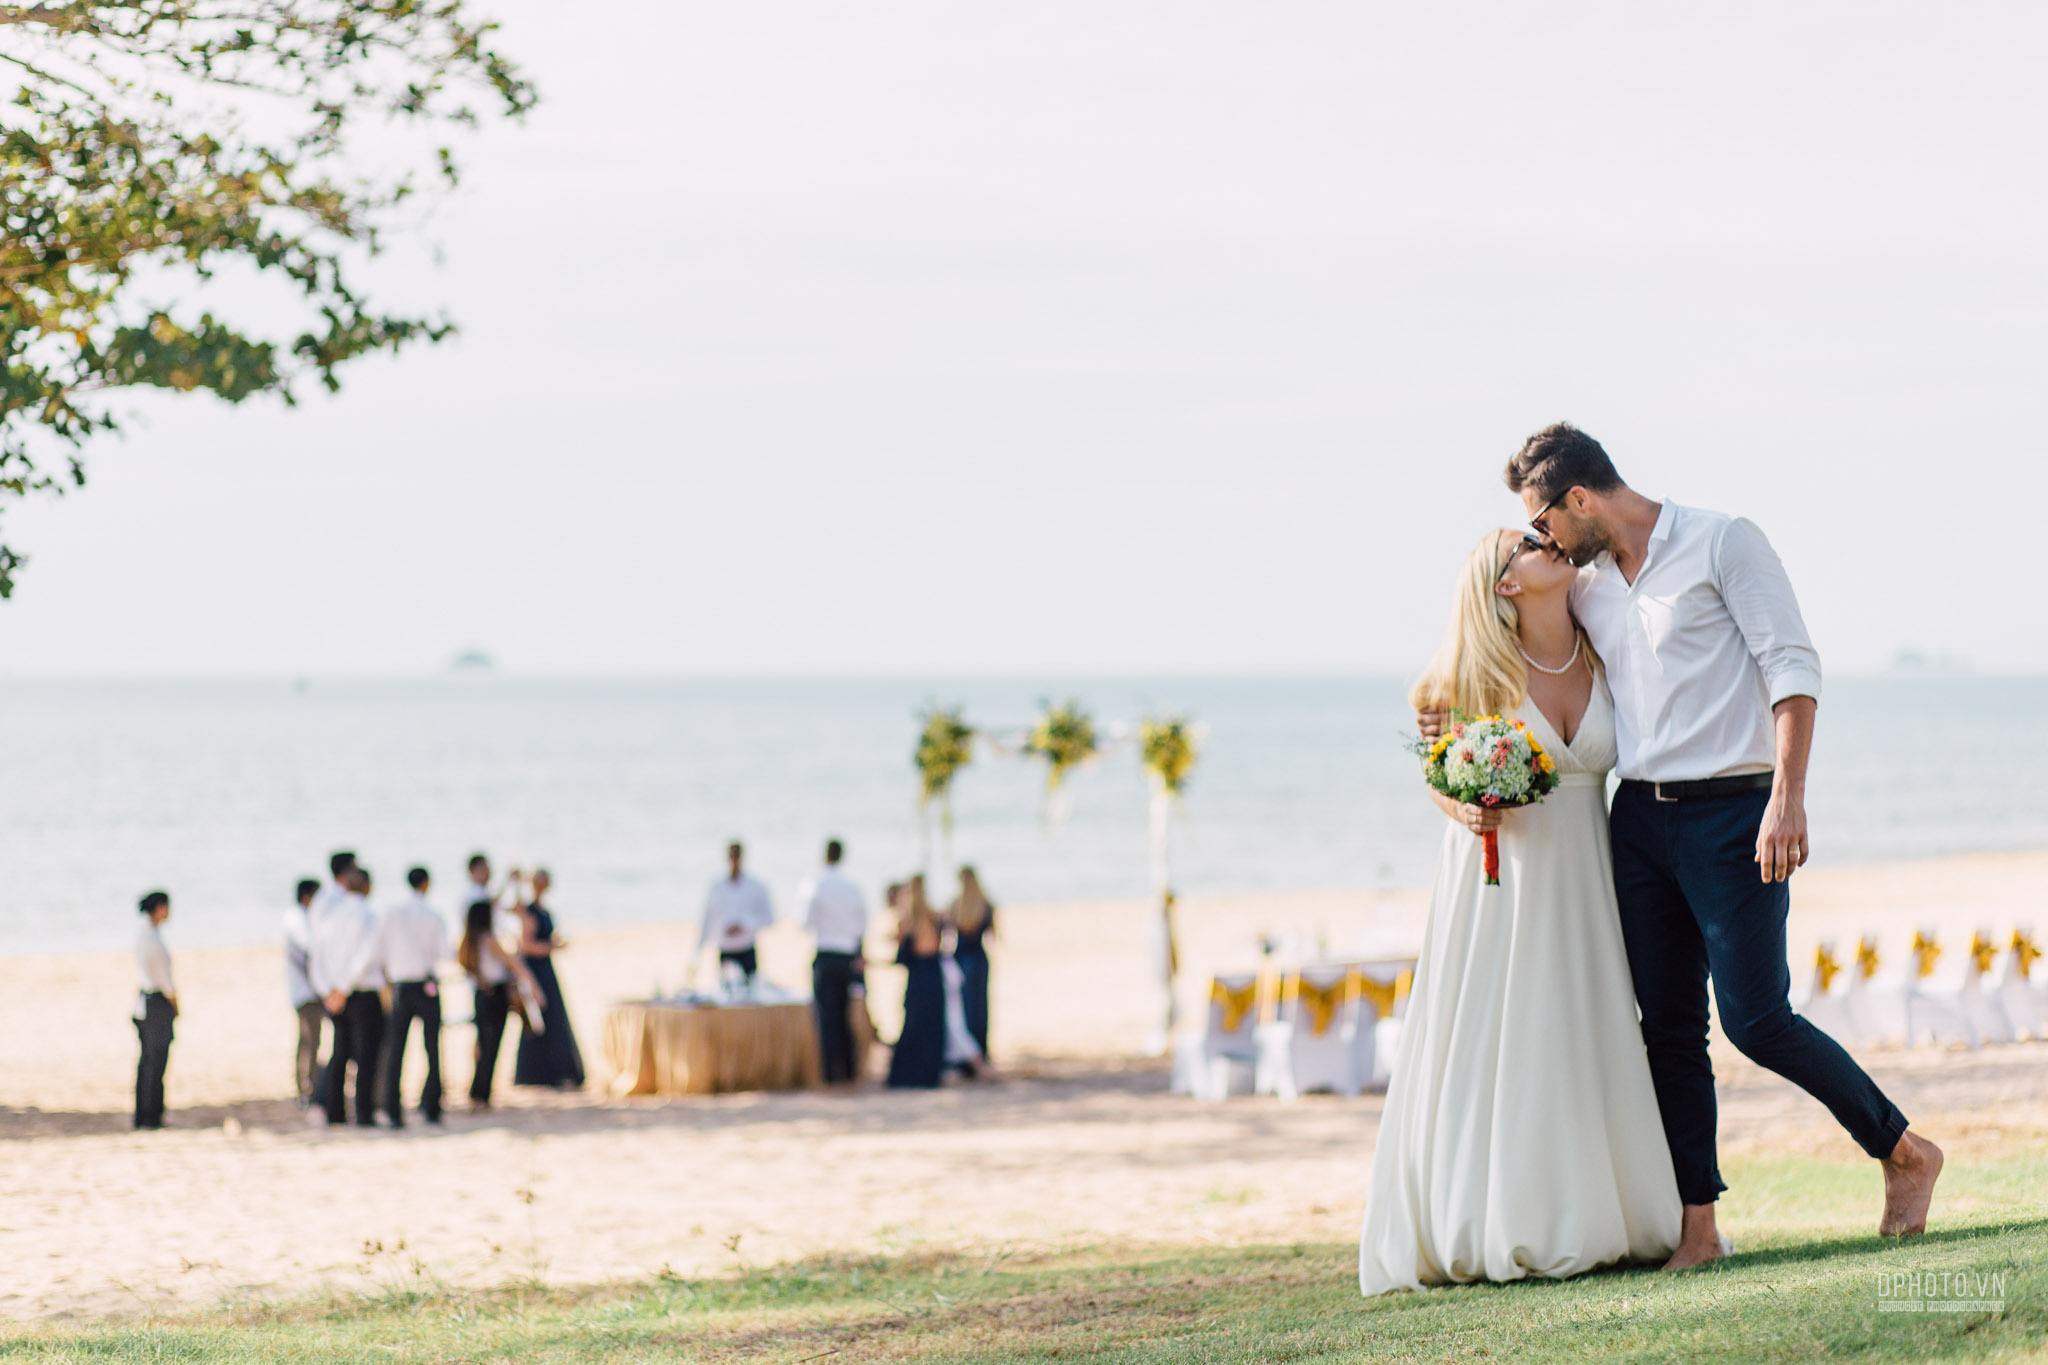 destination_wedding_phu_quoc_viet_nam_photographer_36